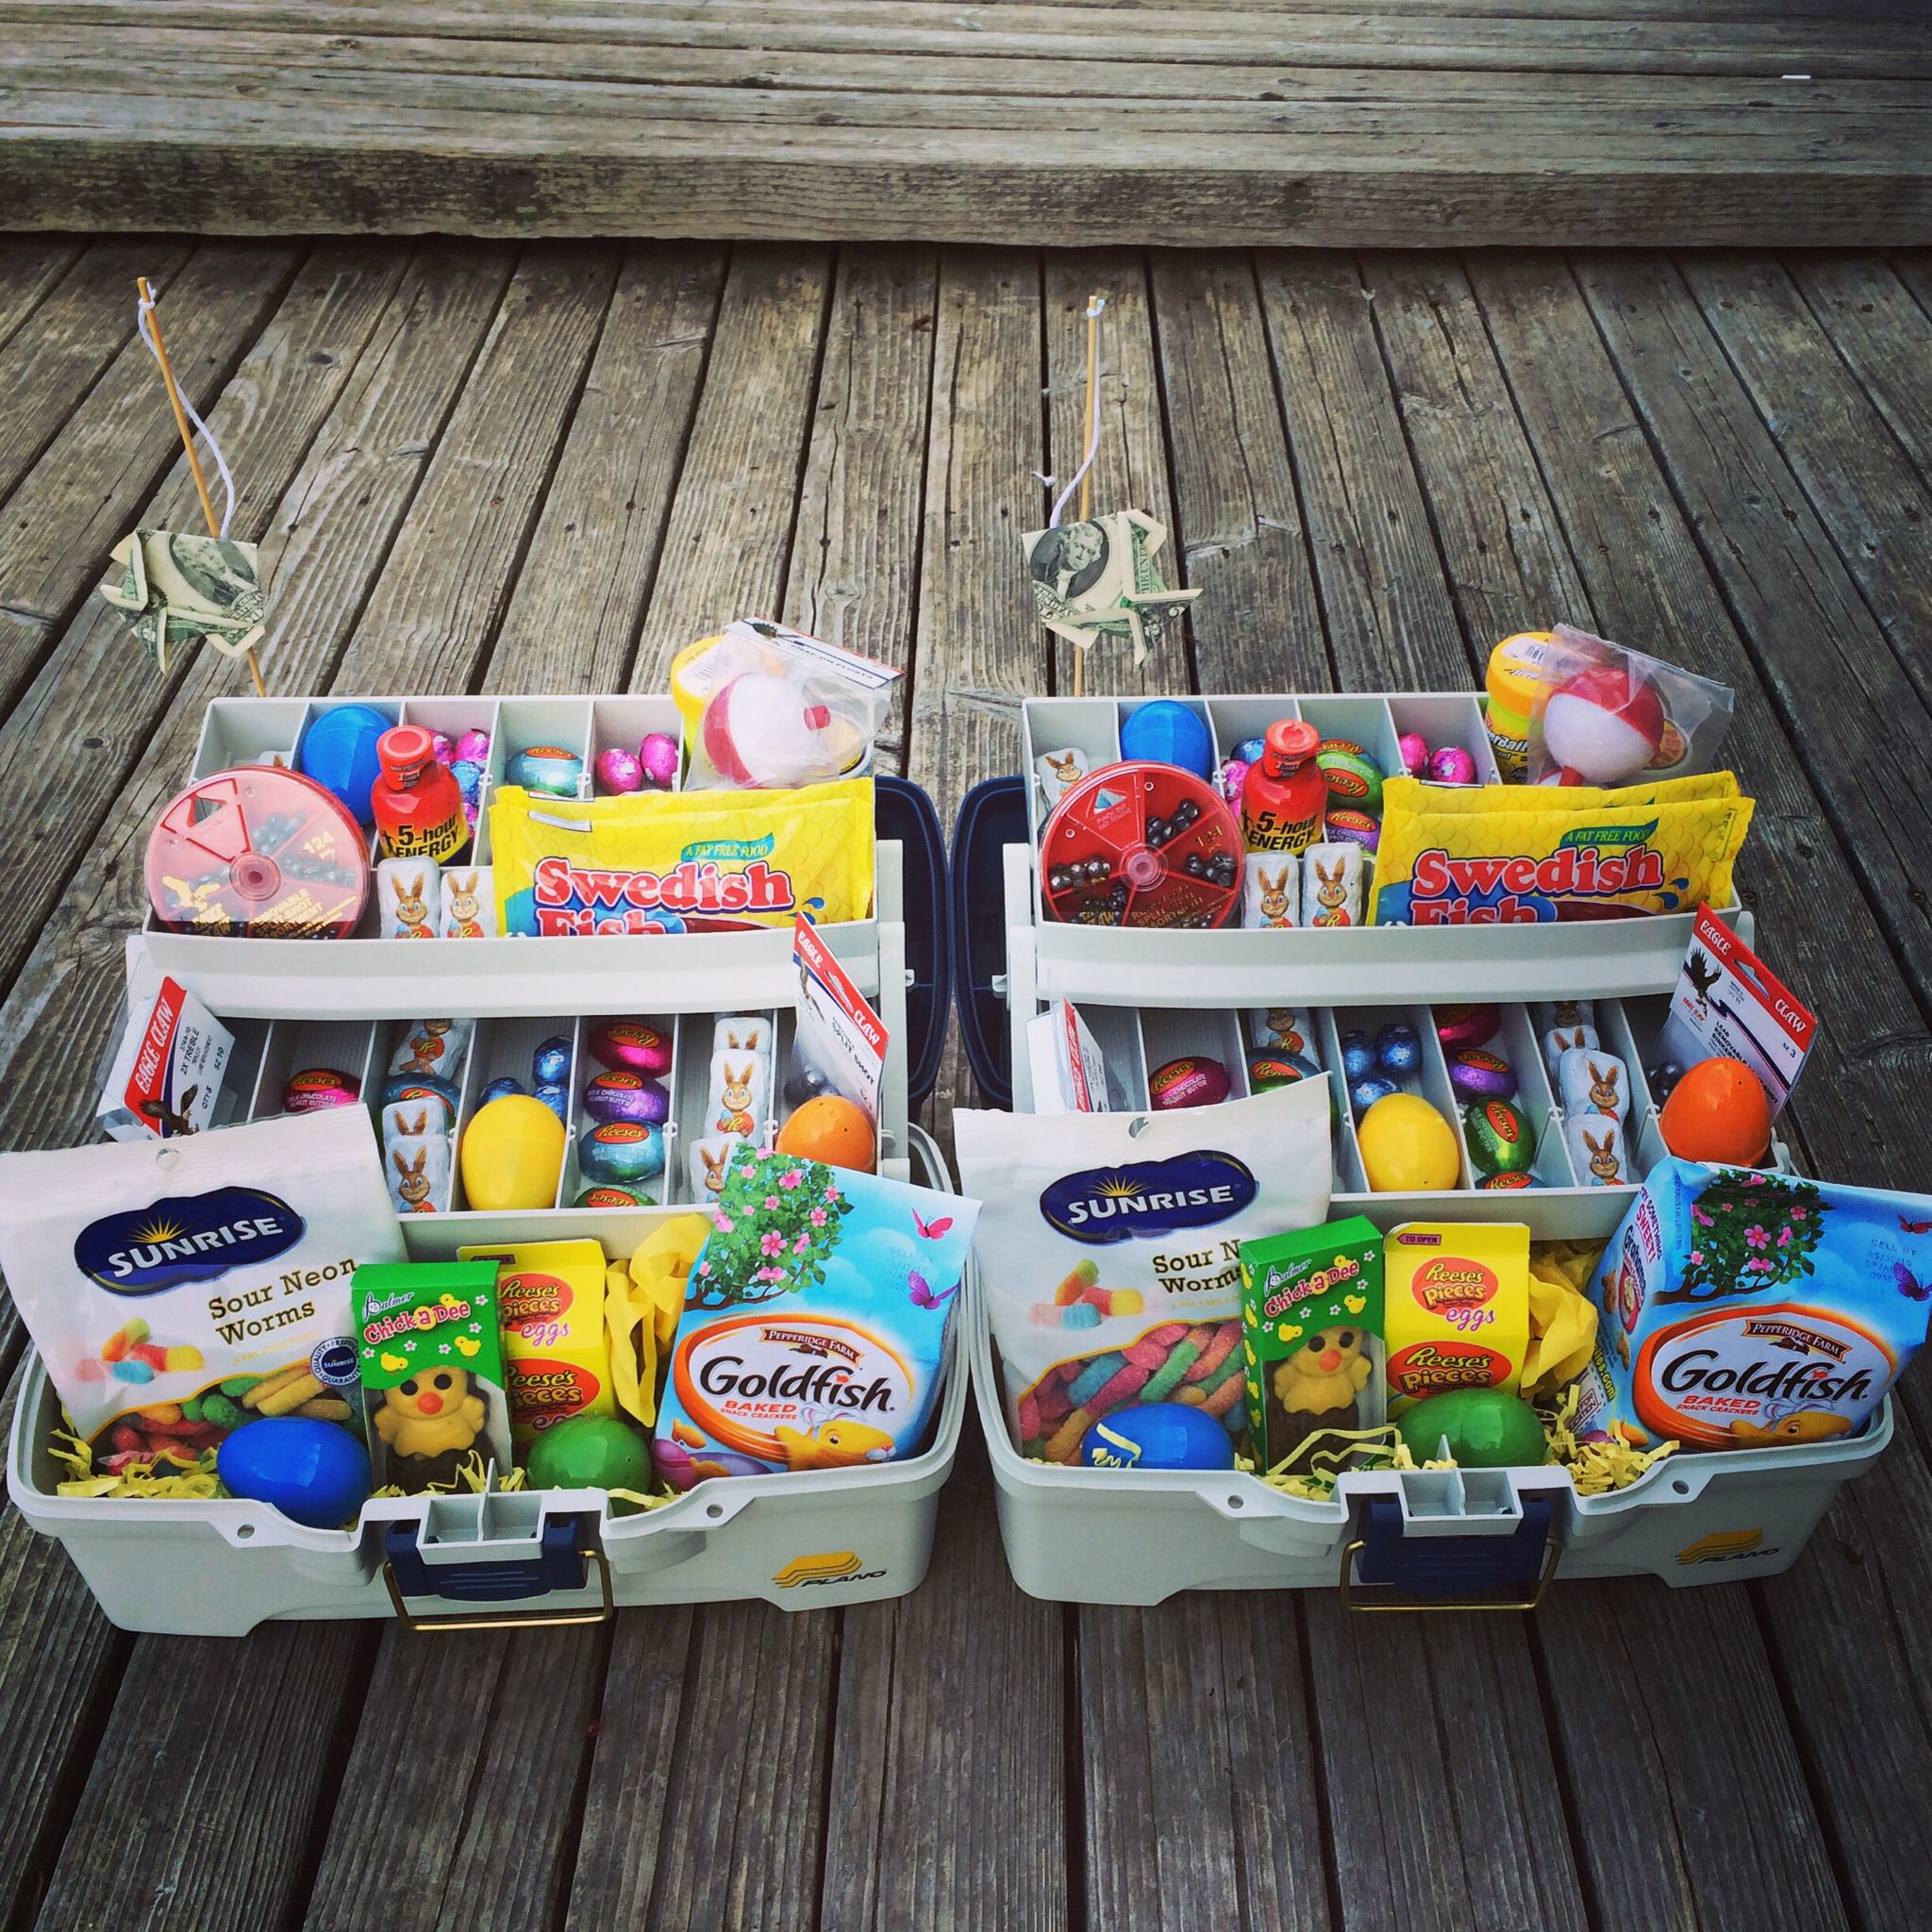 25 great easter basket ideas tackle box goldfish crackers and made these tackle boxesbaskets has gummy worms goldfish crackers and swedish fish added some easter candy and plastic eggs in all the compartments negle